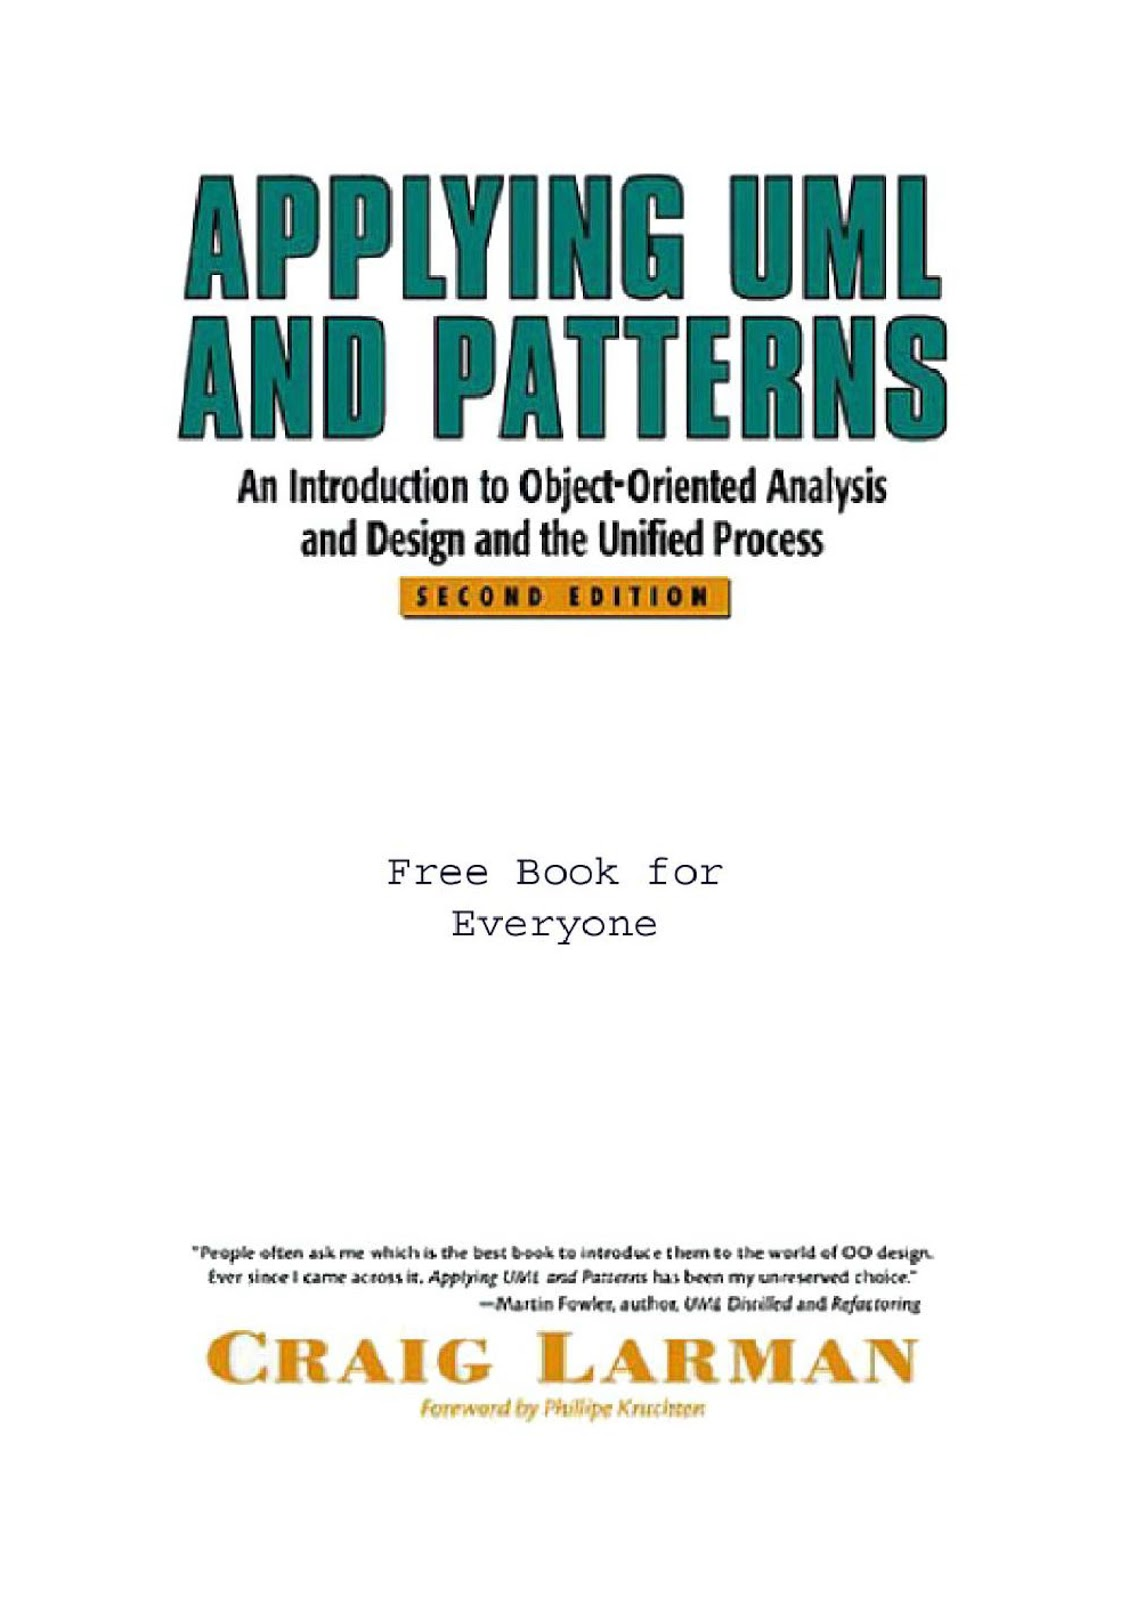 Craig Larman Applying Uml And Patterns Ebook